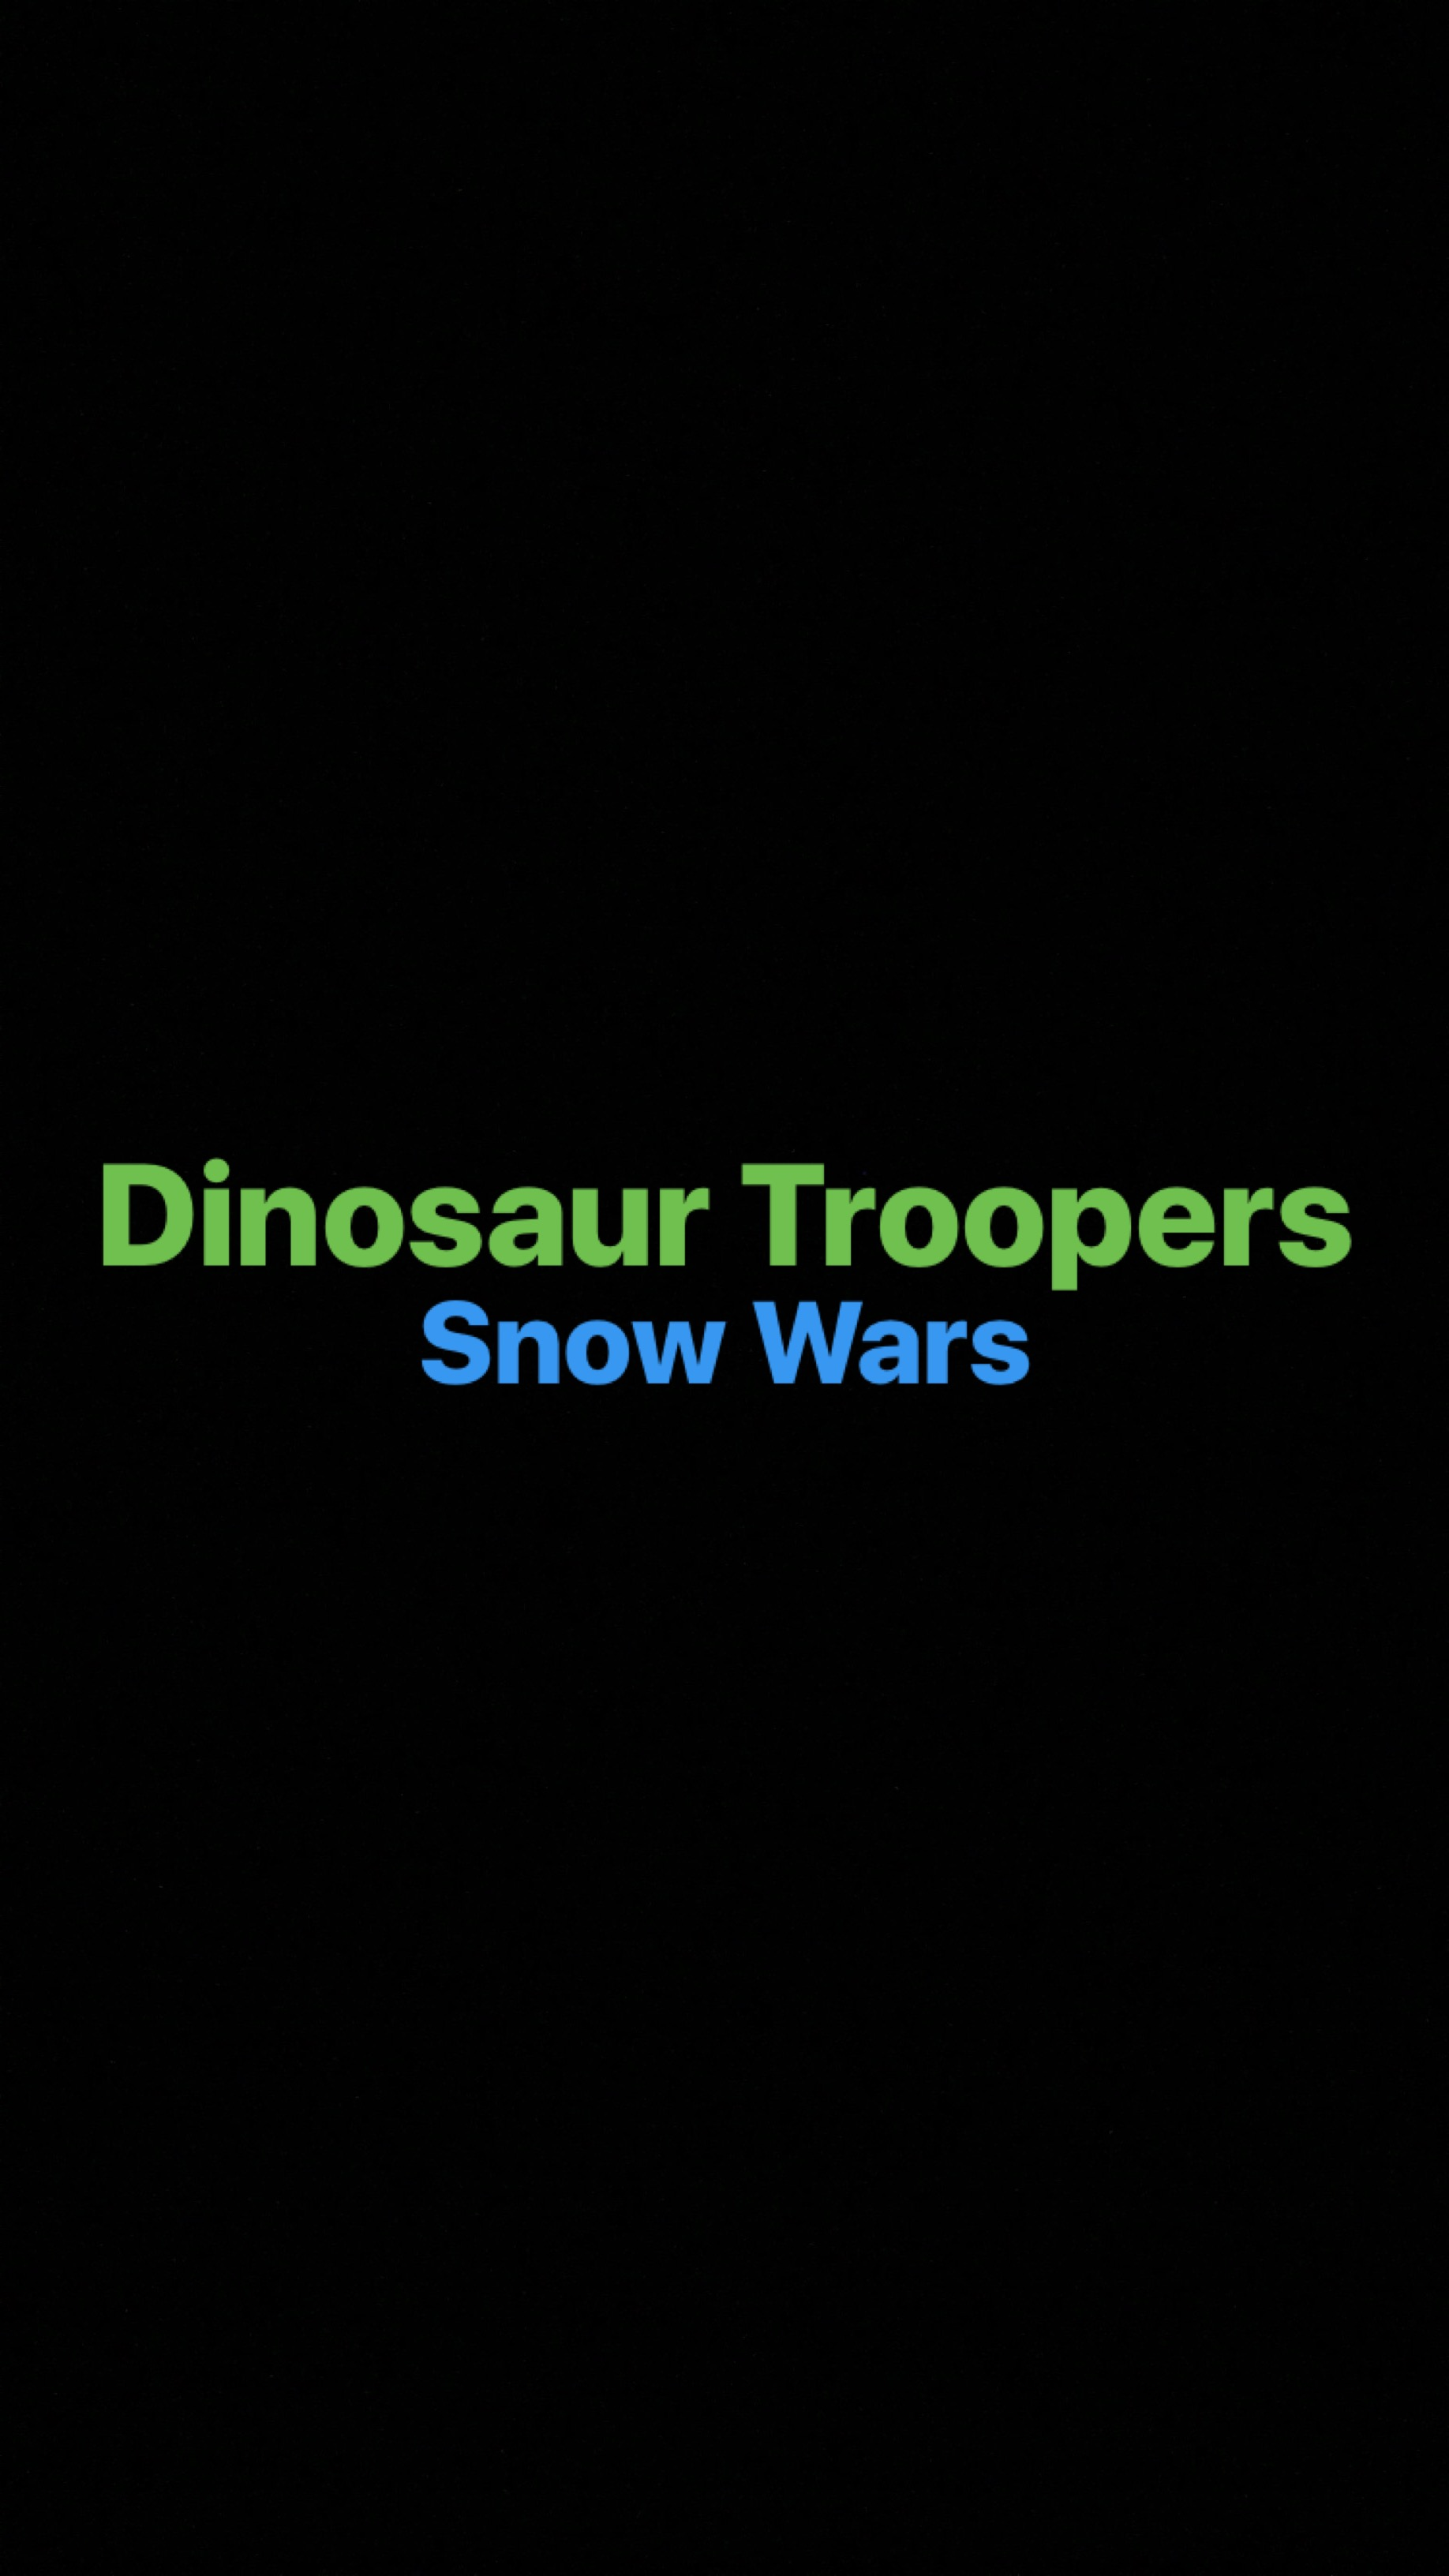 Dinosaur Troopers: Snow Wars